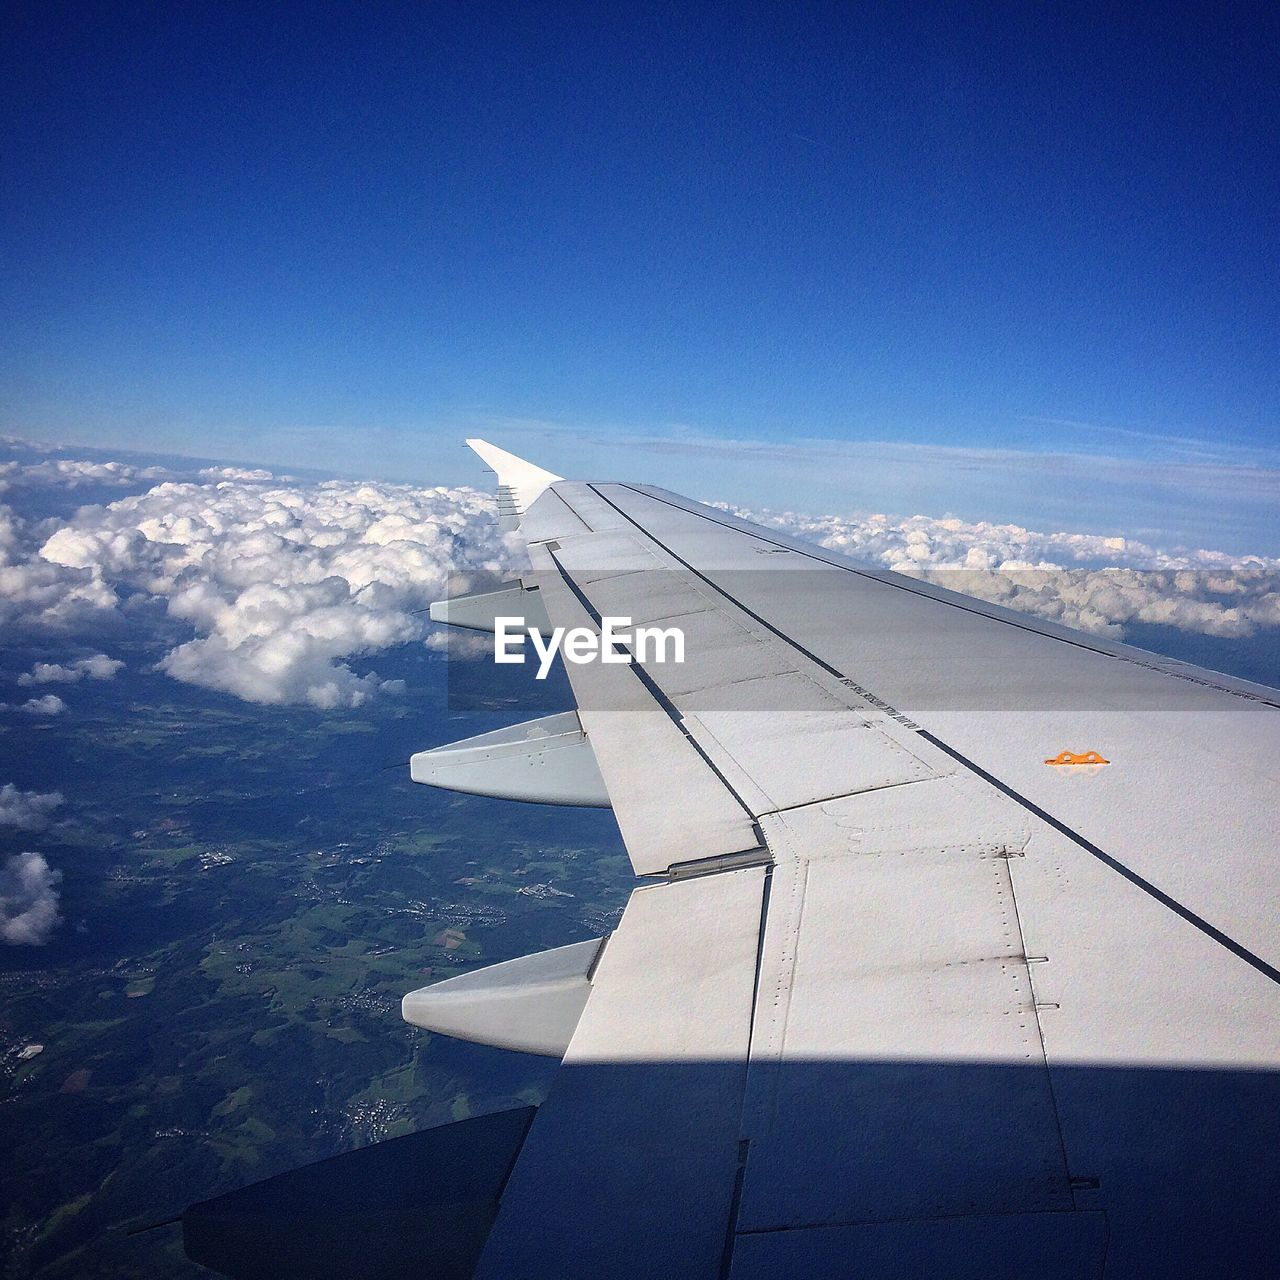 airplane, aerial view, airplane wing, travel, nature, transportation, blue, journey, no people, day, sky, cloud - sky, outdoors, beauty in nature, aircraft wing, mode of transport, scenics, flying, air vehicle